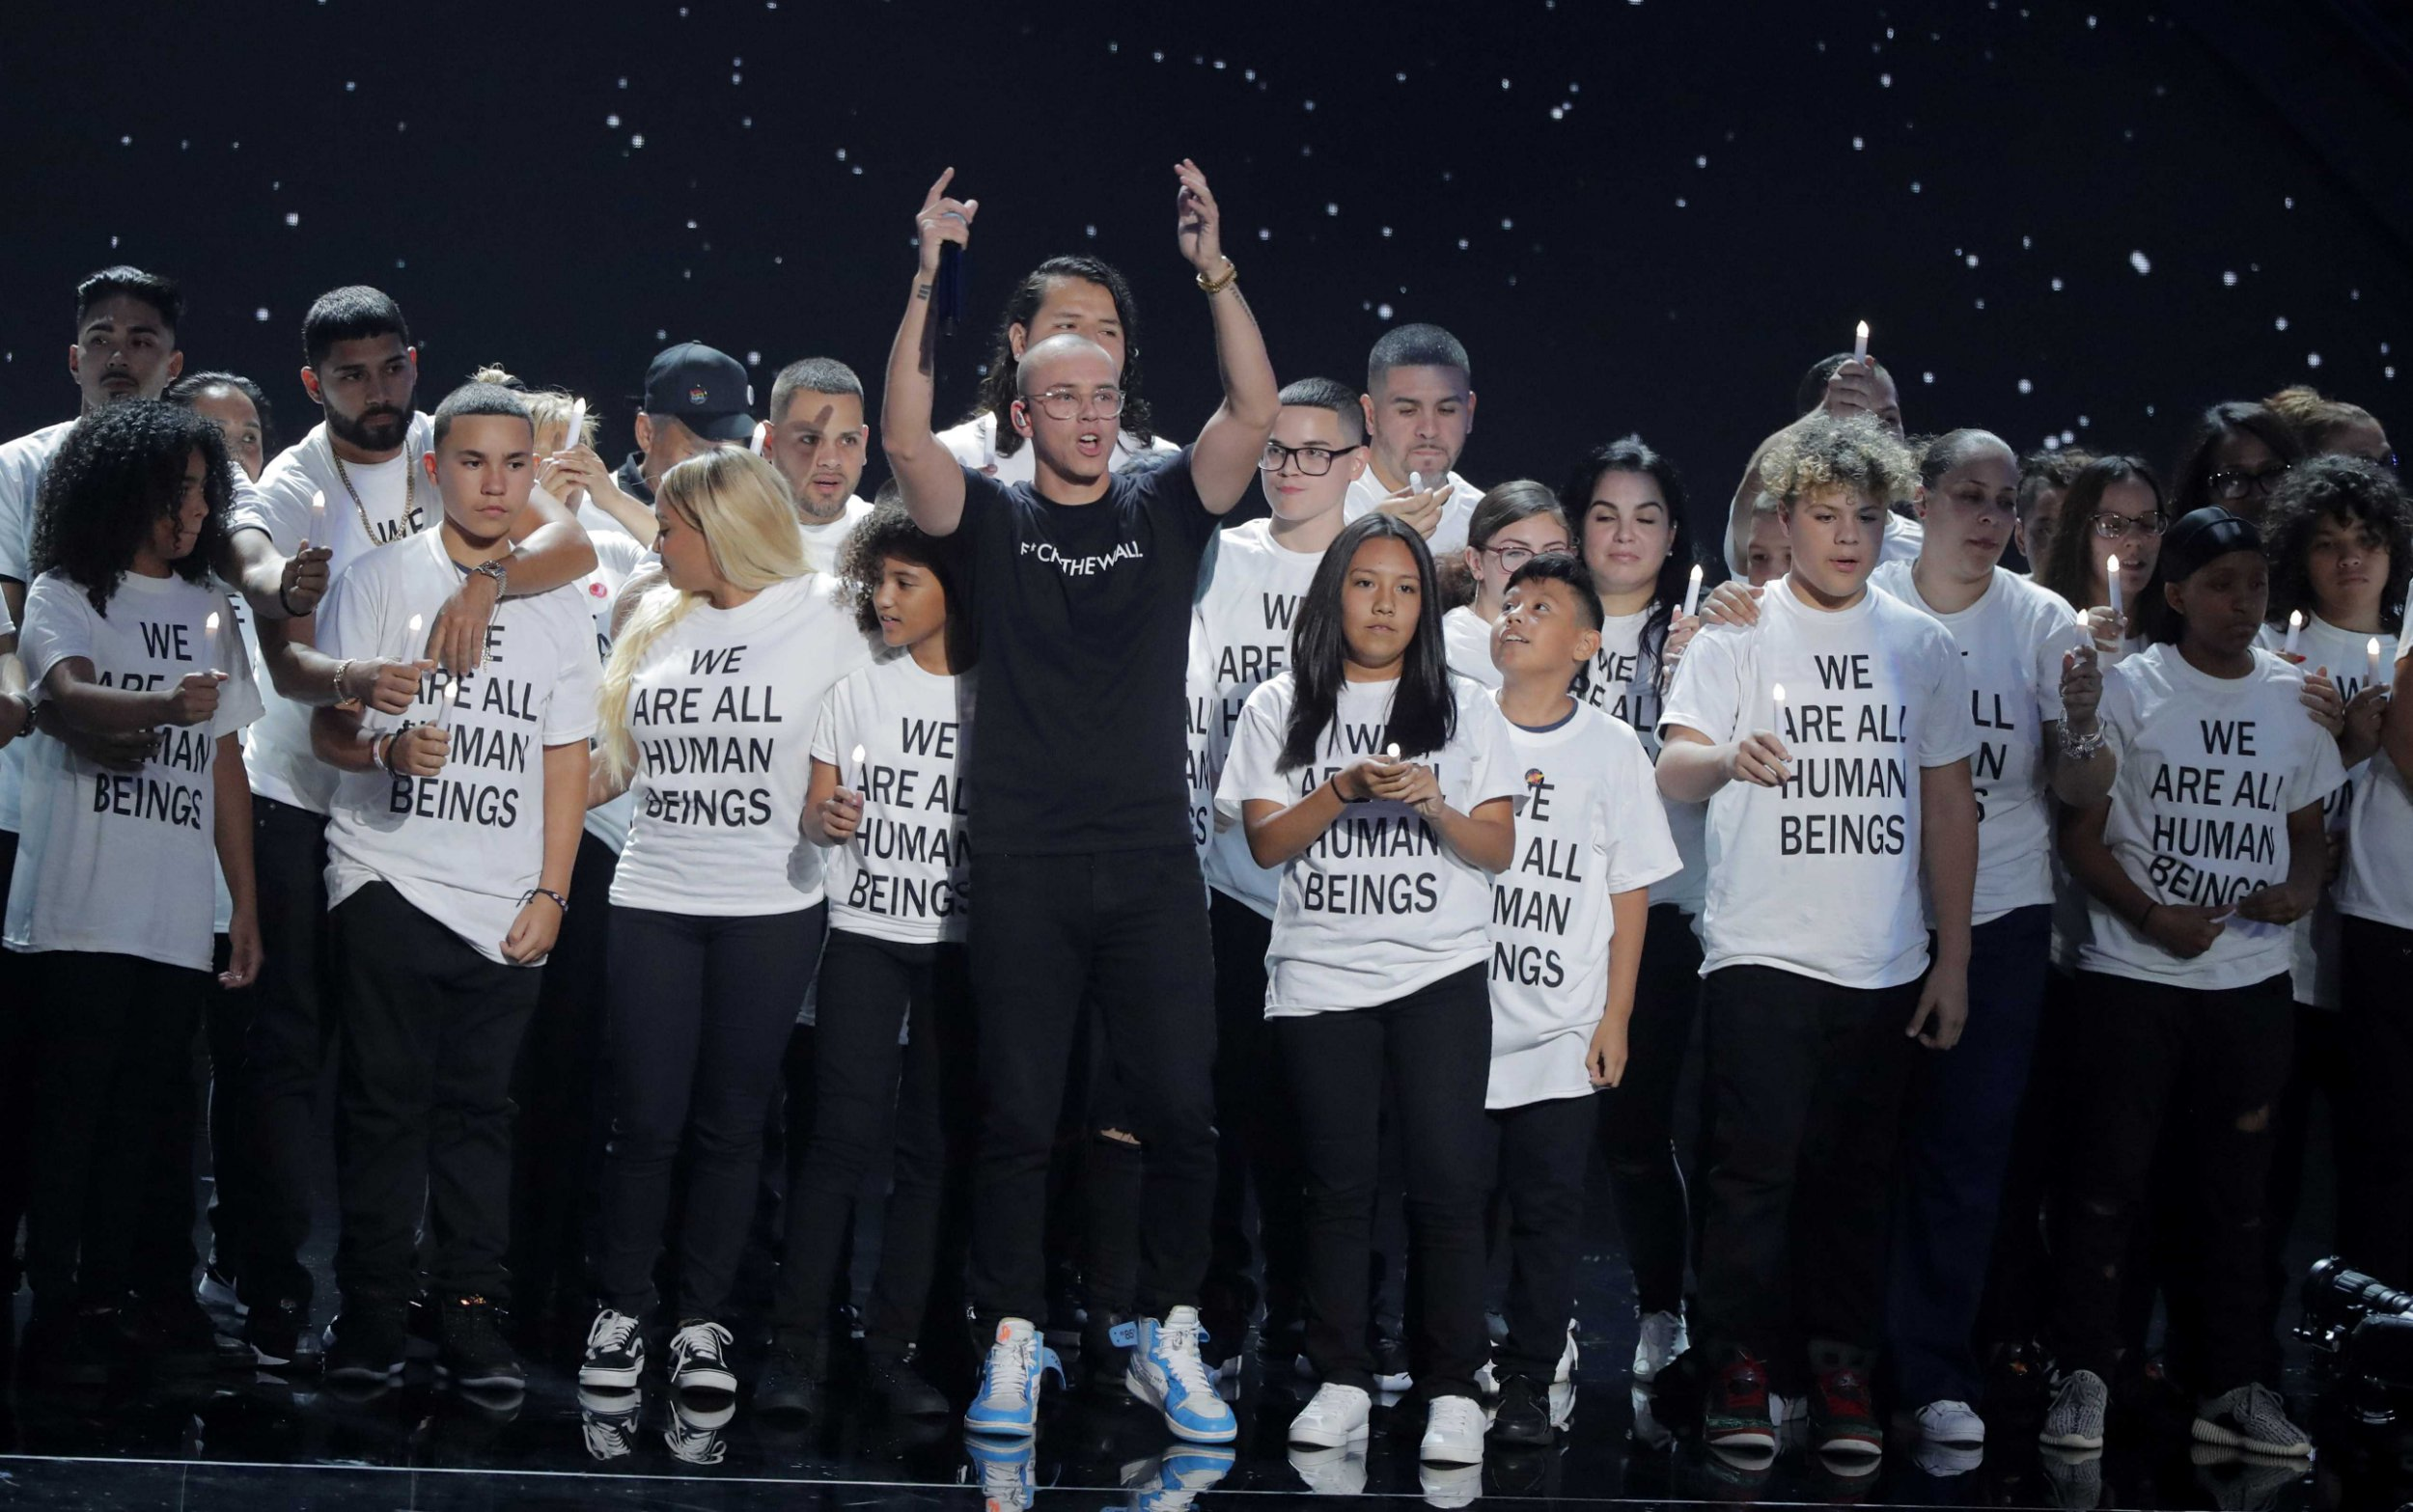 Logic and Ryan Tedder deliver politically-charged 'f*ck the wall' performance at MTV VMAs 2018